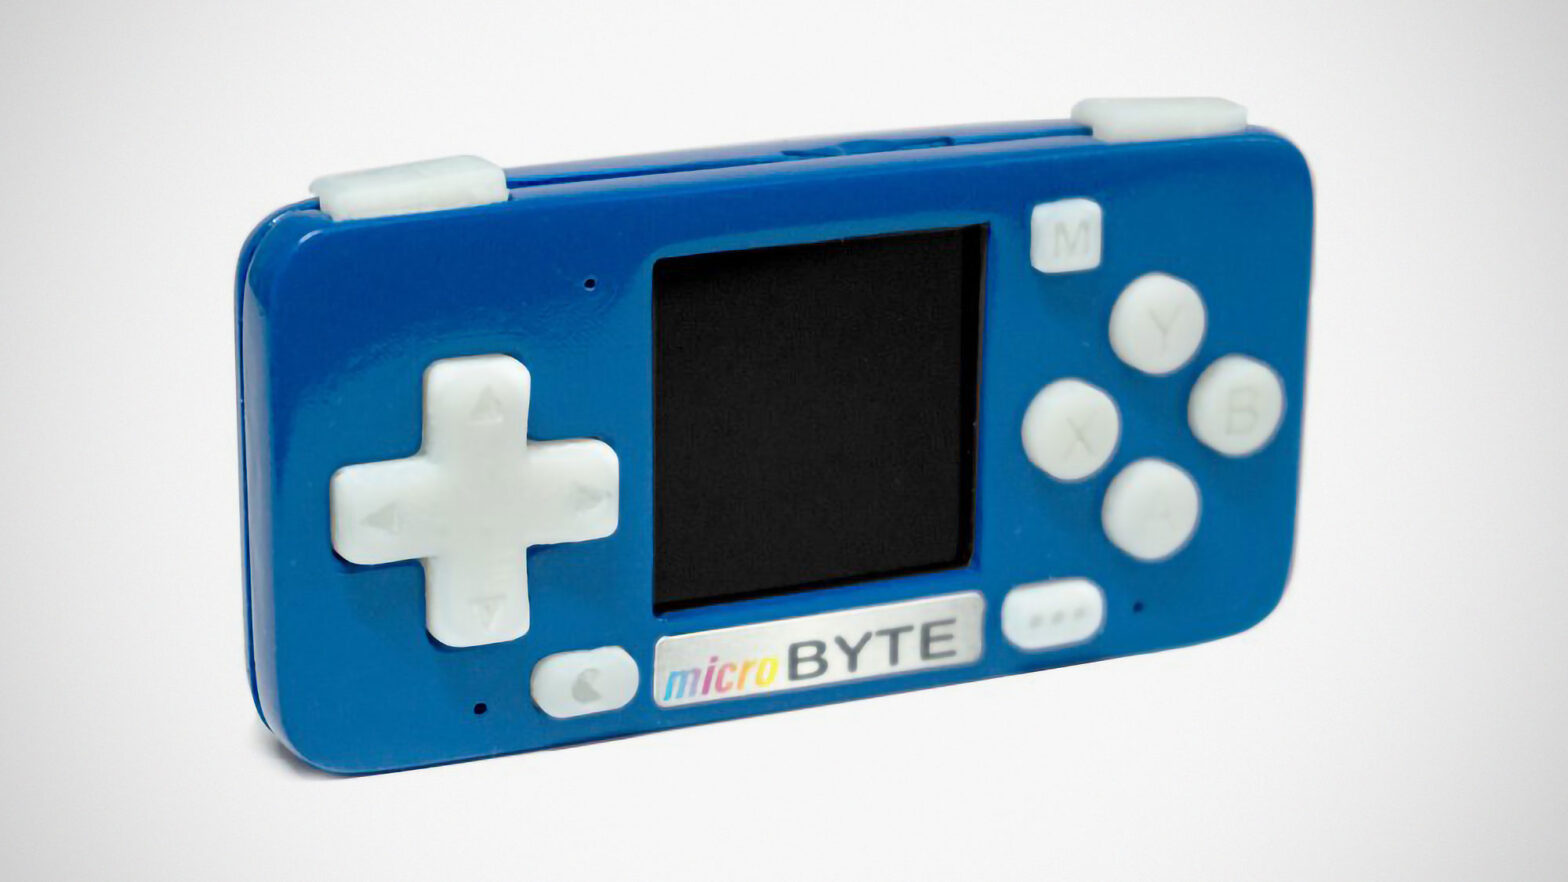 microByte Handheld Retro Gaming Console